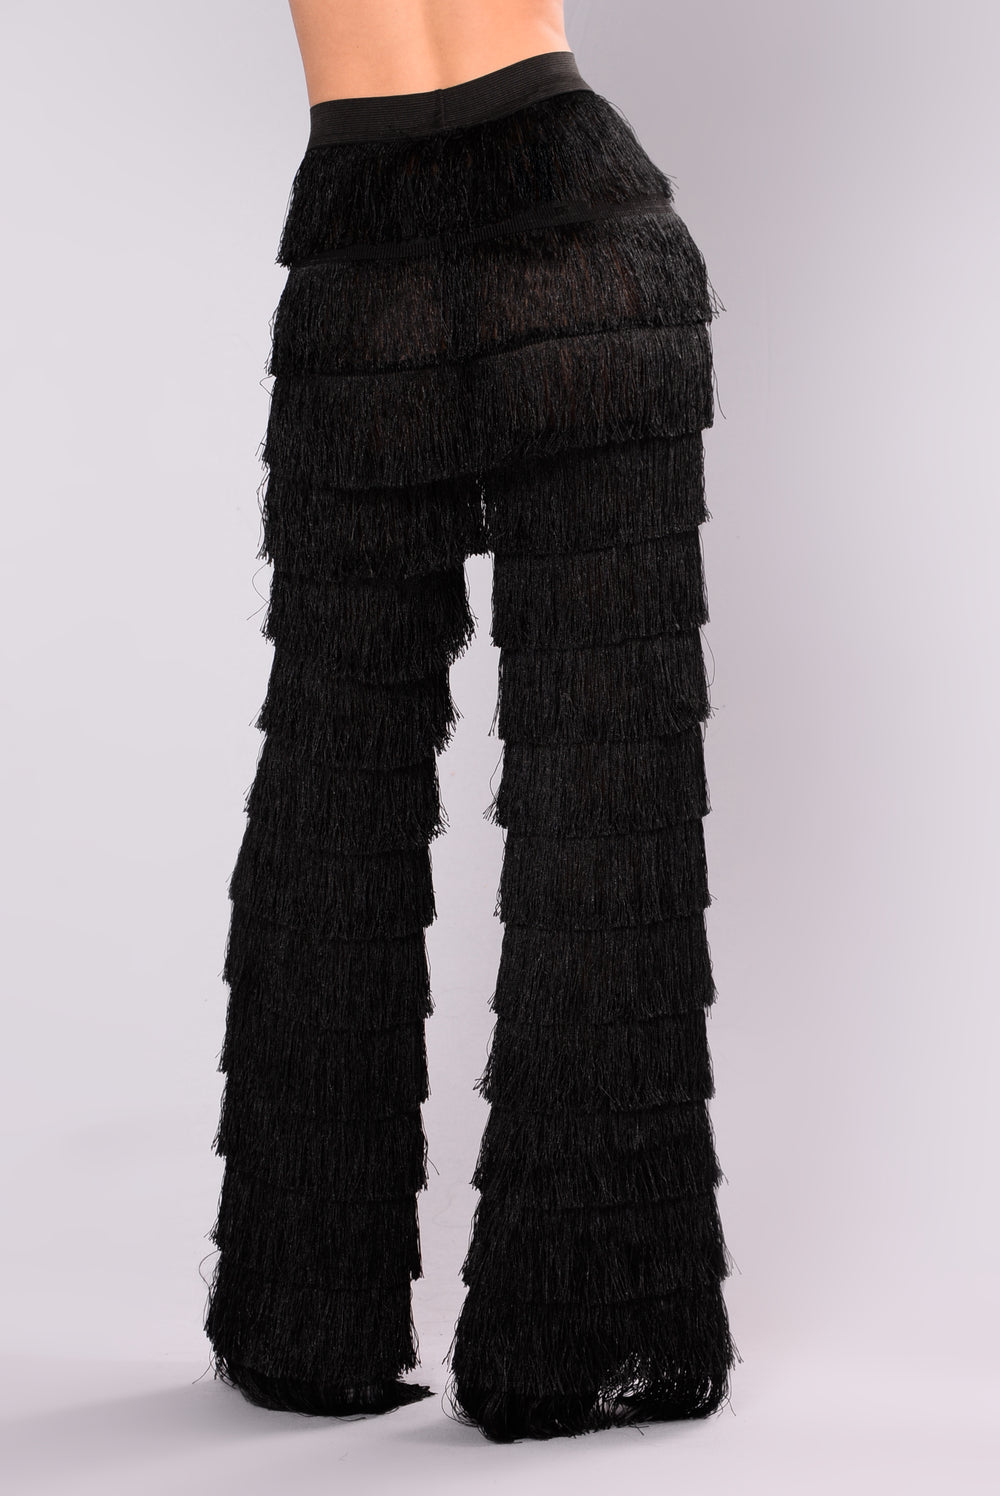 Katyana Layered Fringe Pants - Black